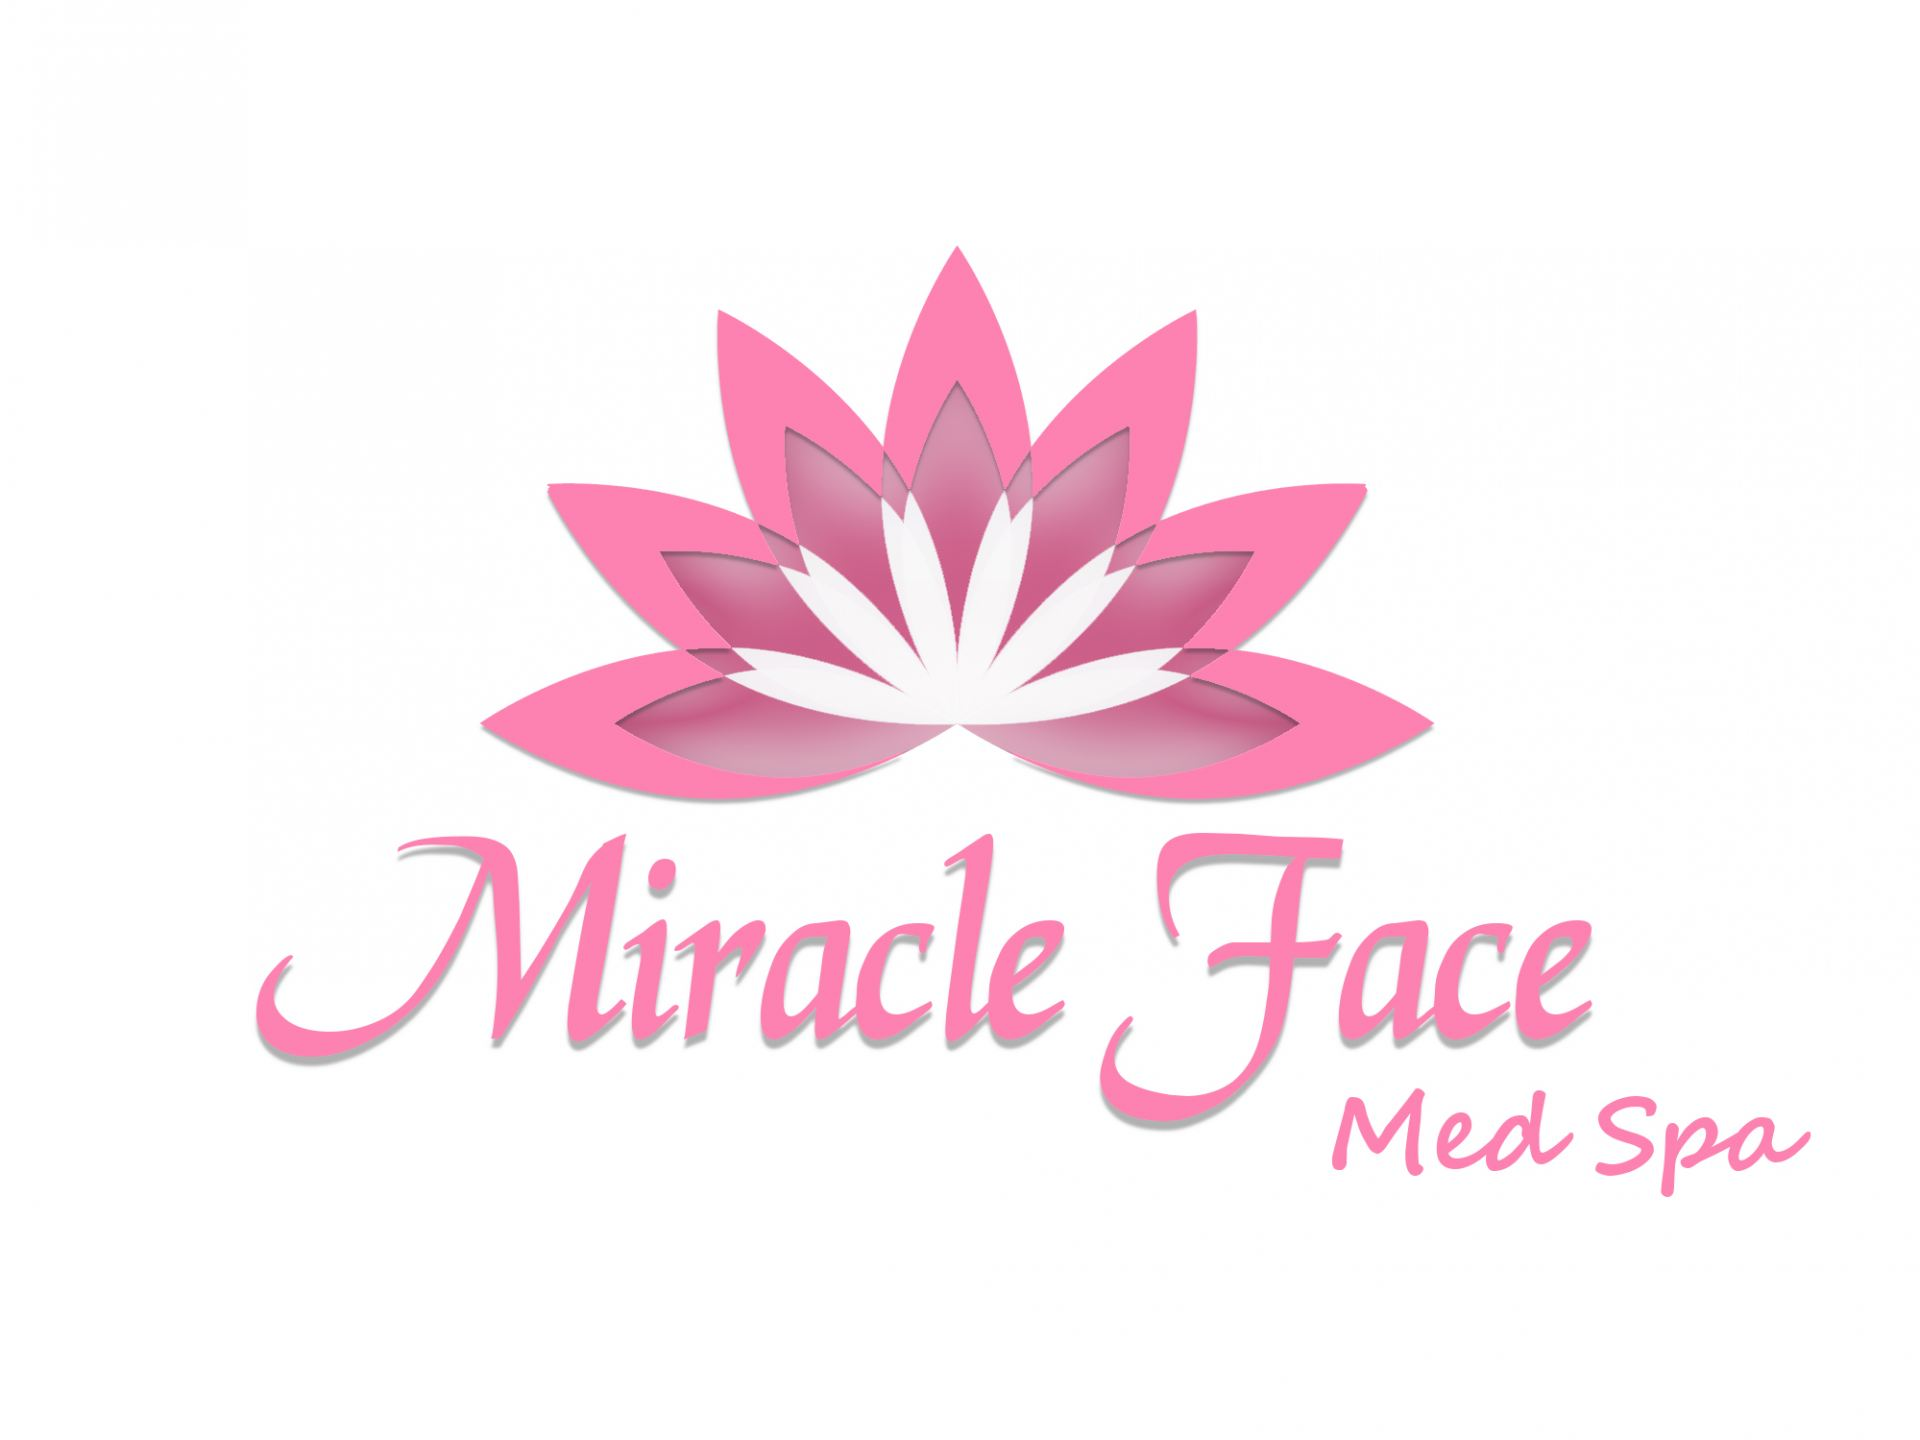 MiracleFace Med Spa Logo